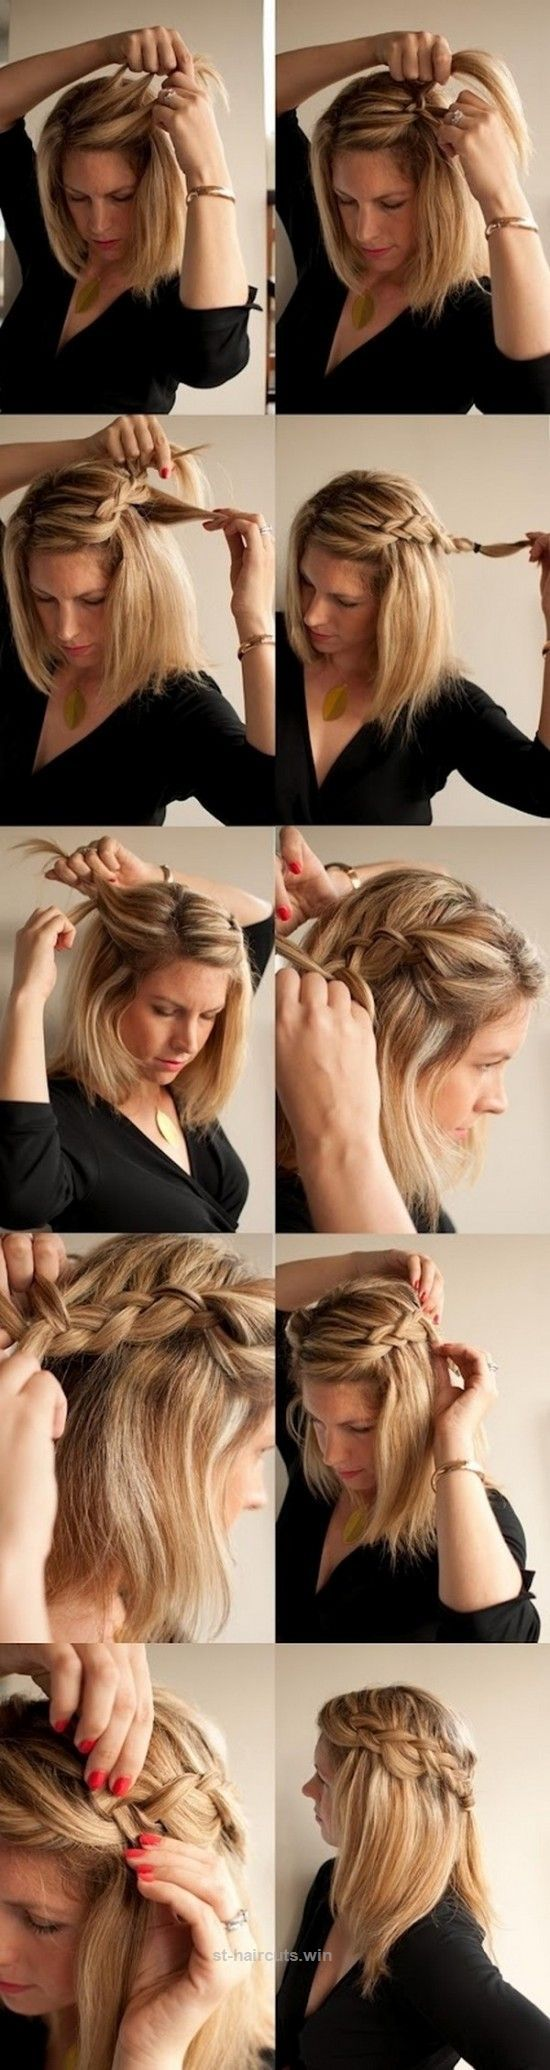 Insane Cascade braids tutorial|Hairstyle Trends For /Winter 2013-2014|Best Braided Hairstyles For Women | Braided Hair Looks & Ideas|Fall 2013 Hairstyle Trends: Fall 2013 Lo ..